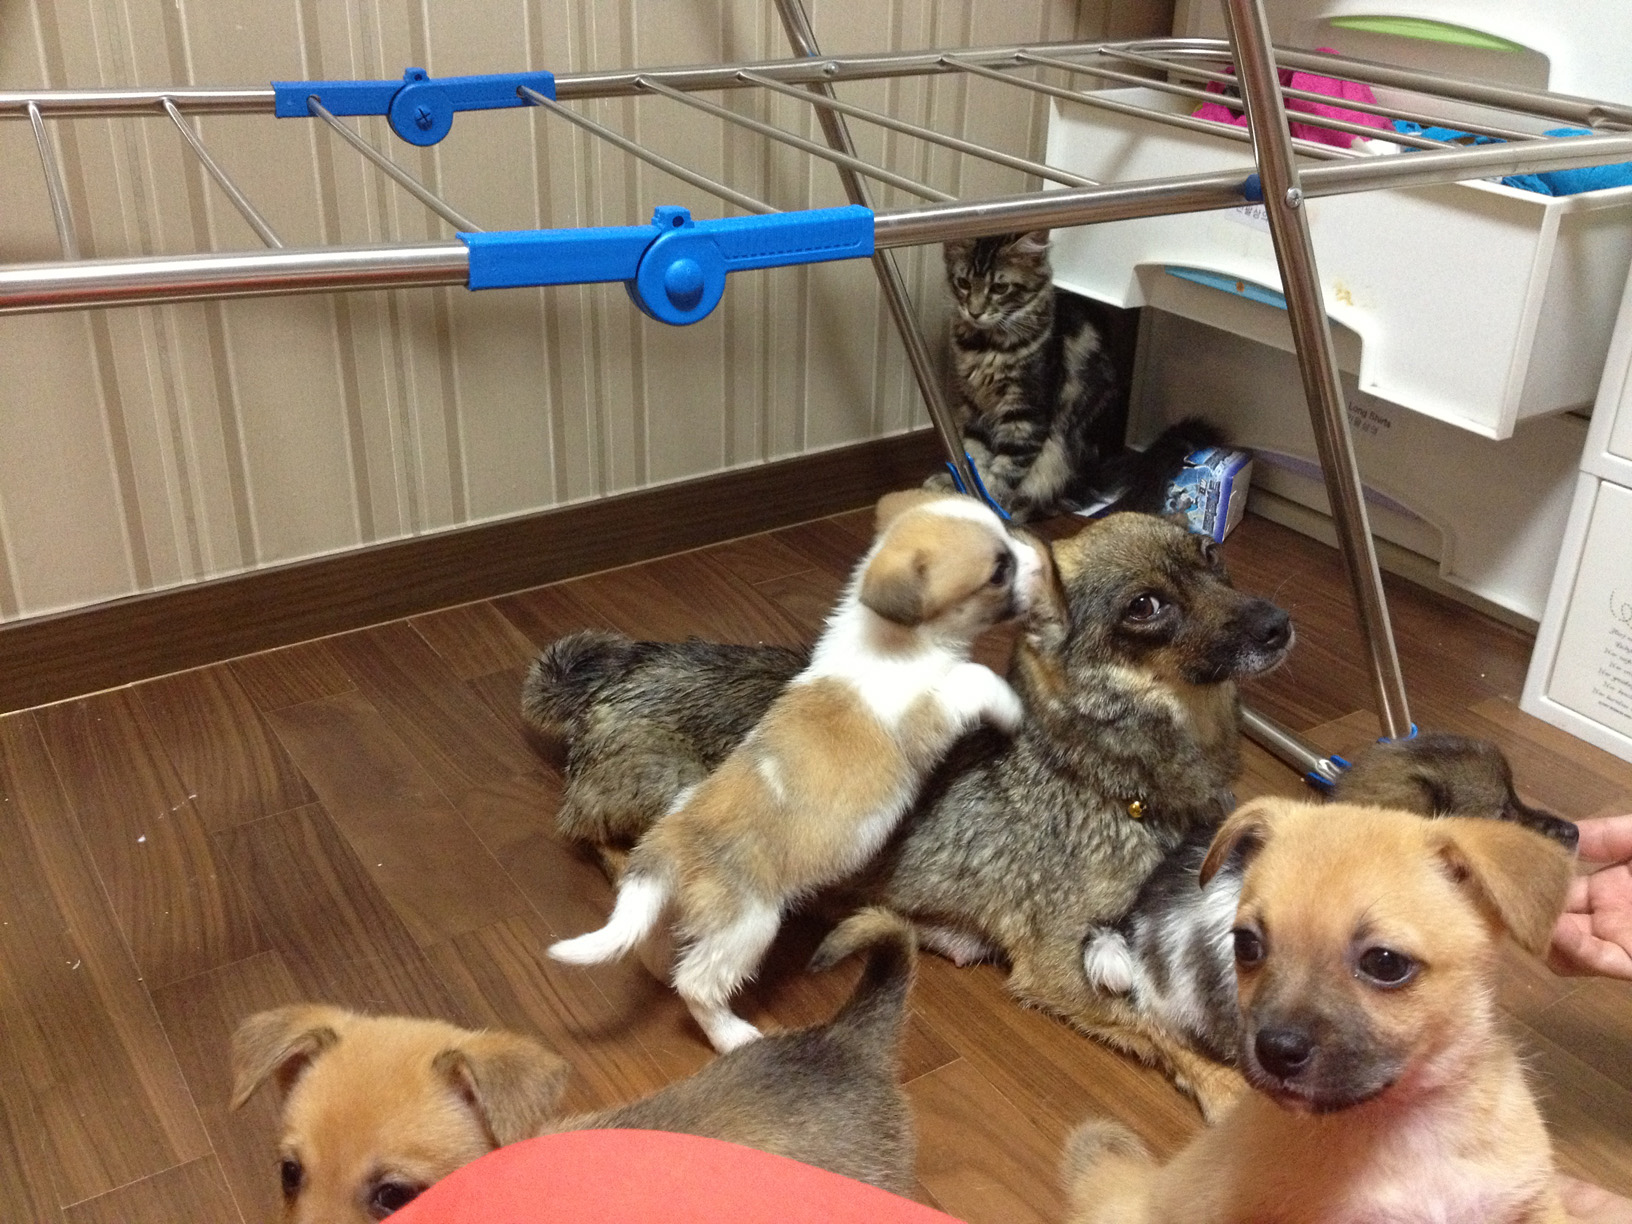 maachaq general today corgi mutant loves live corner pets pictures your super post busy streets rained